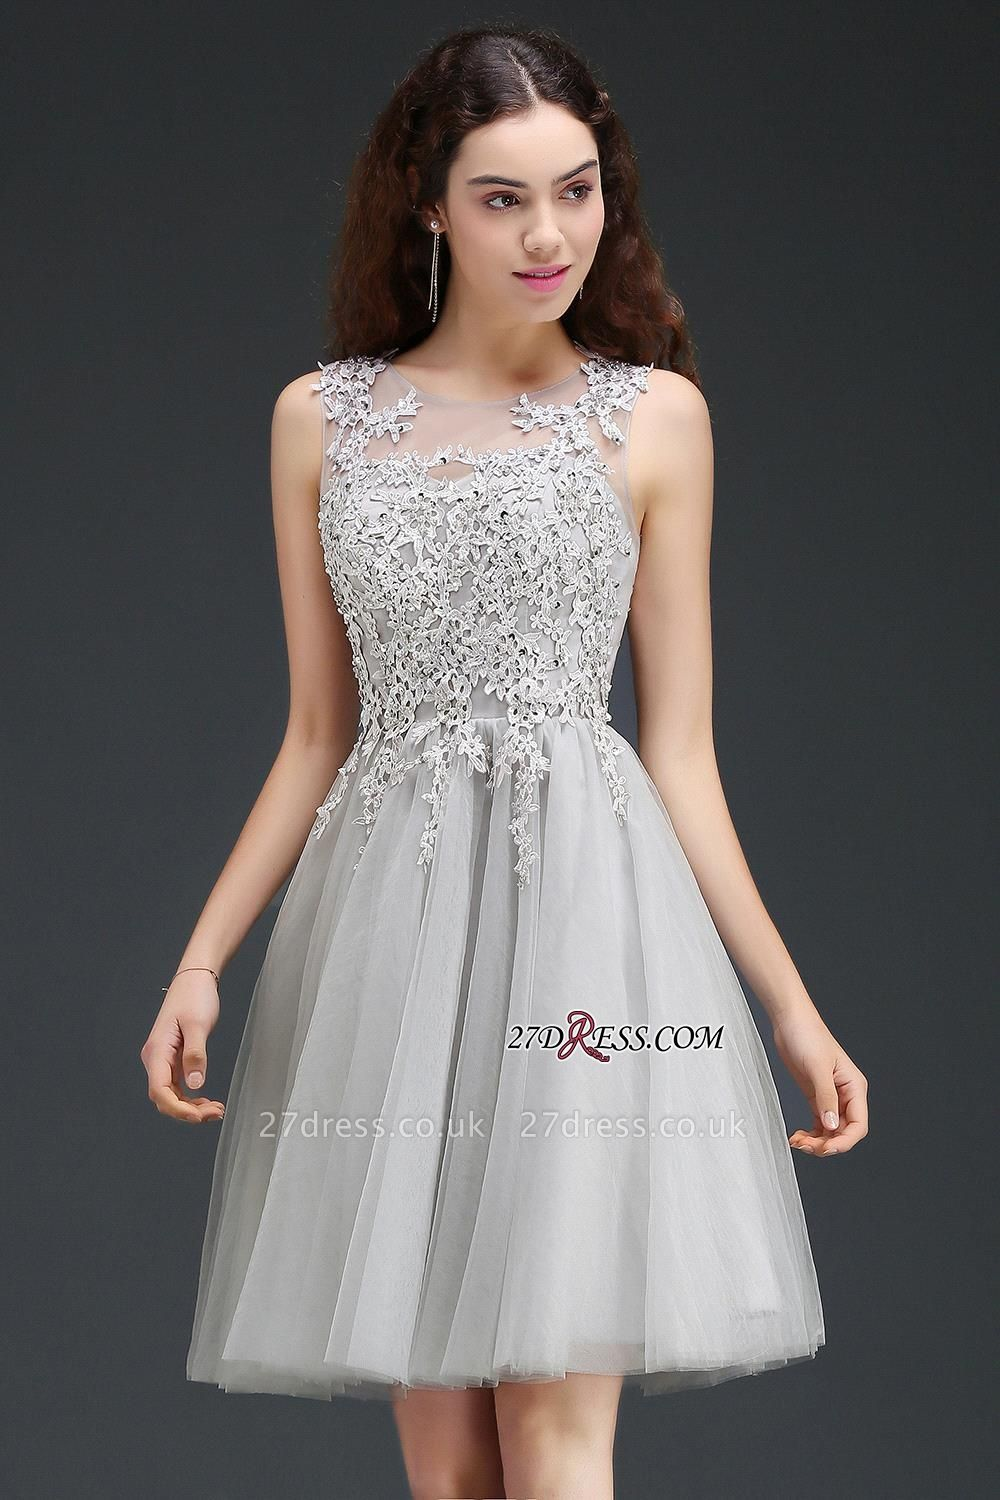 Silver Tulle Short A-Line Sleeveless Appliques Homecoming Dress UK